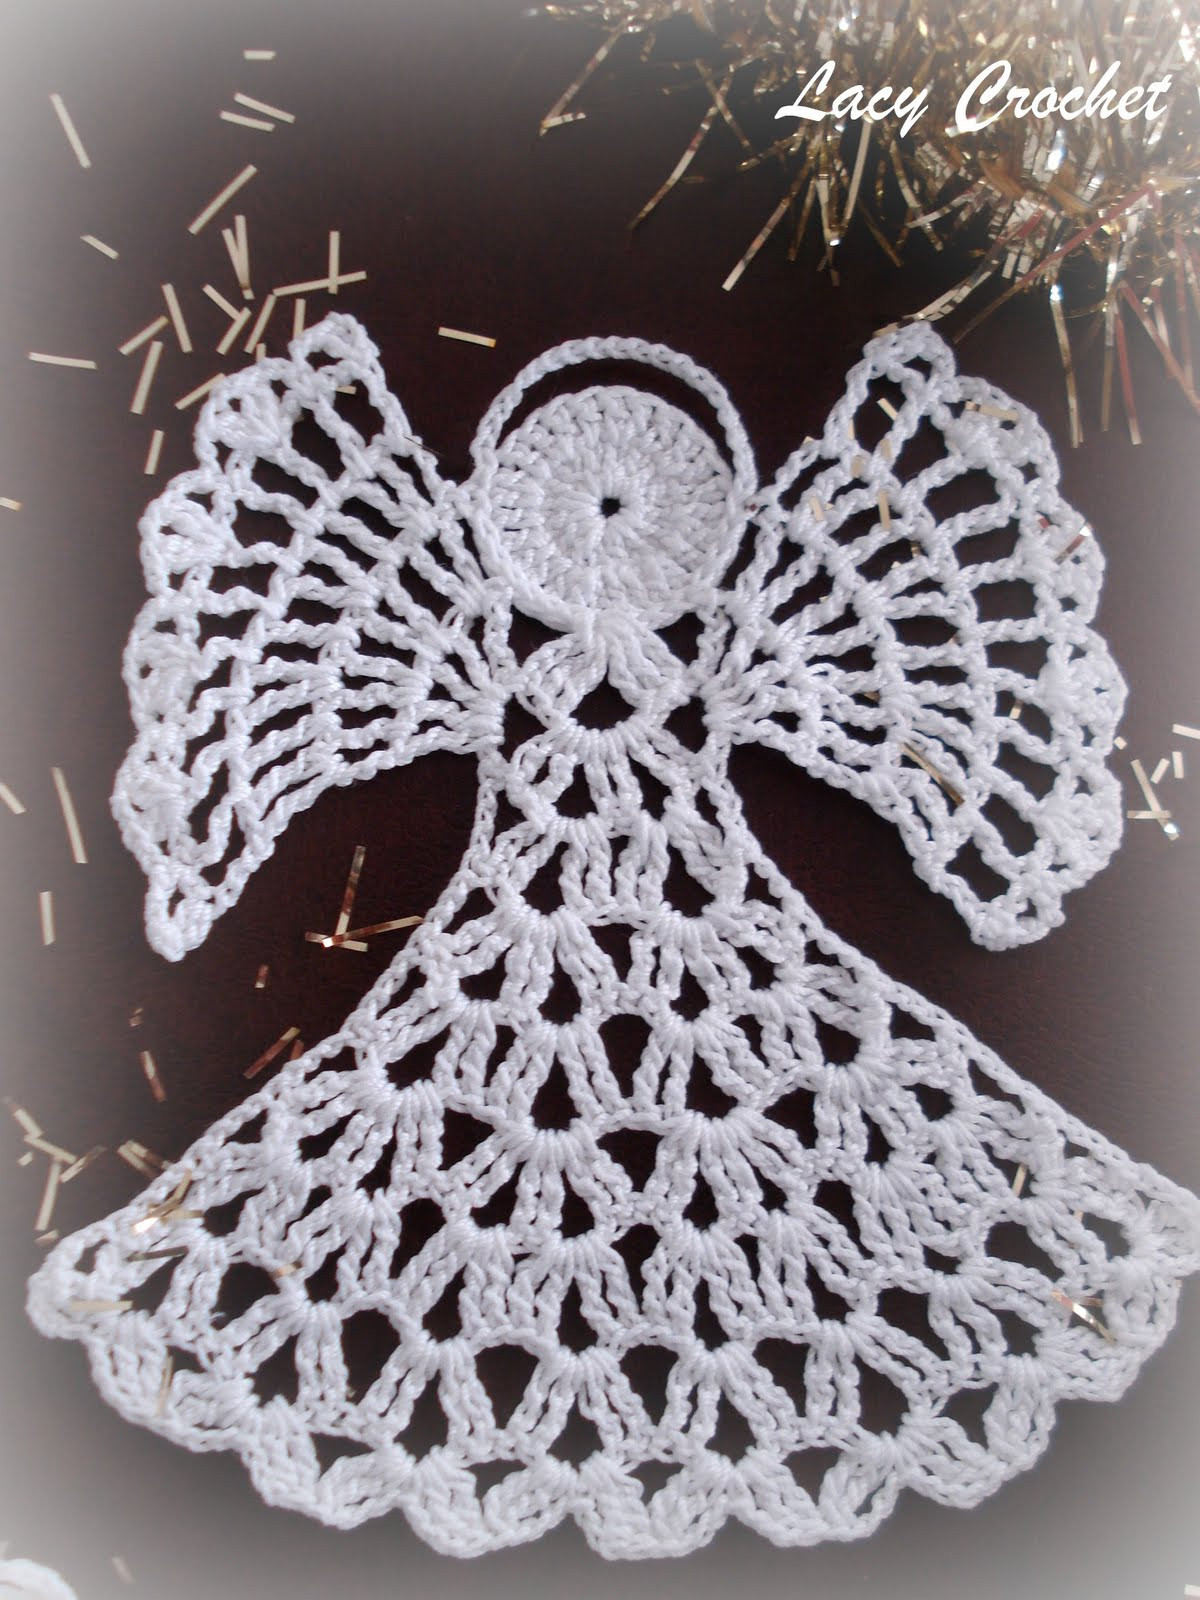 Lacy Crochet Other Free Crochet Patterns